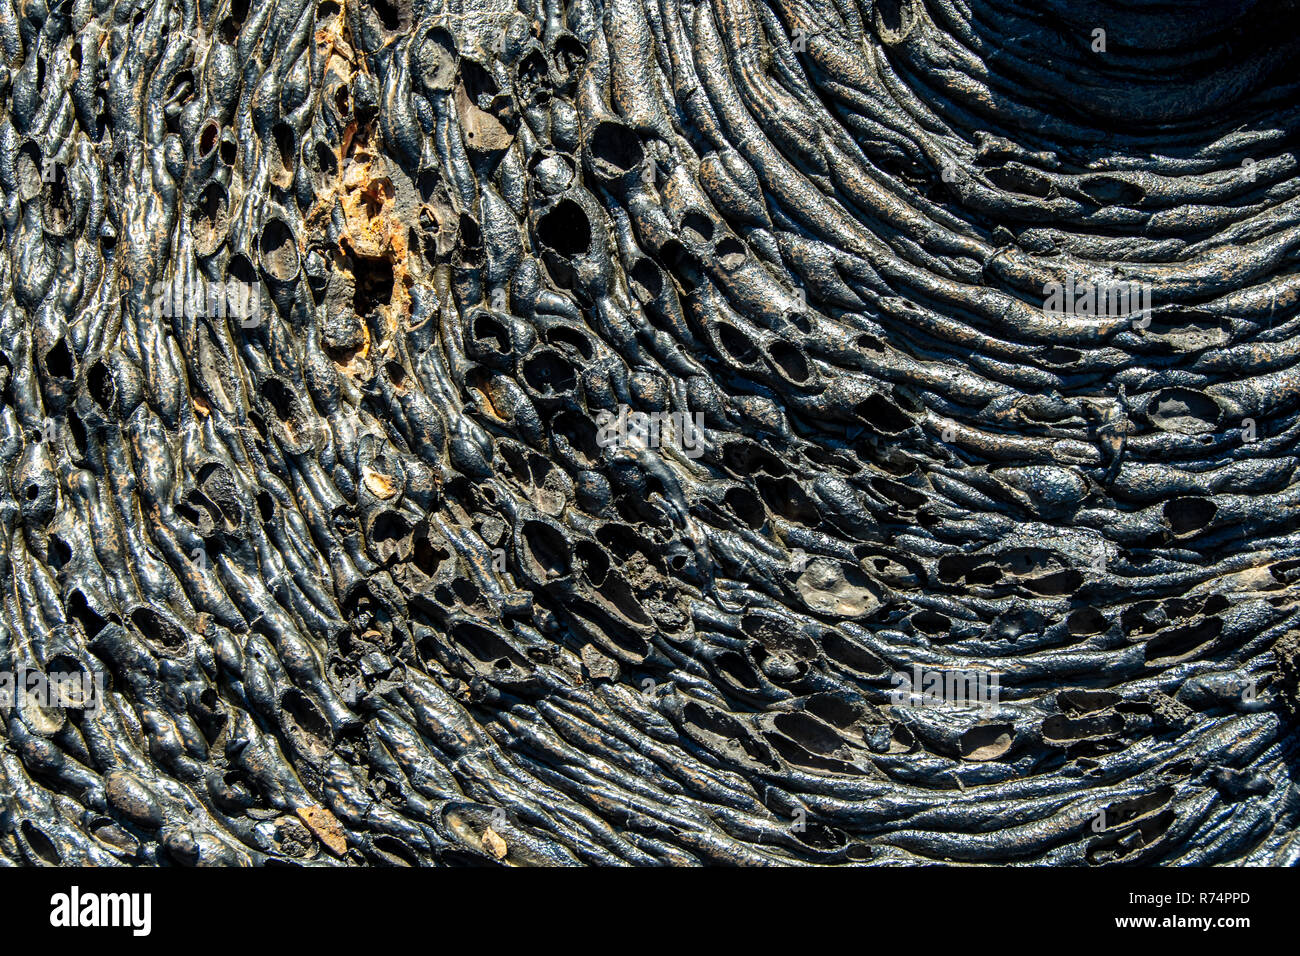 Drawings and forms on the lava flow of the island Santiago in the Galapagos, Ecuador - Stock Image